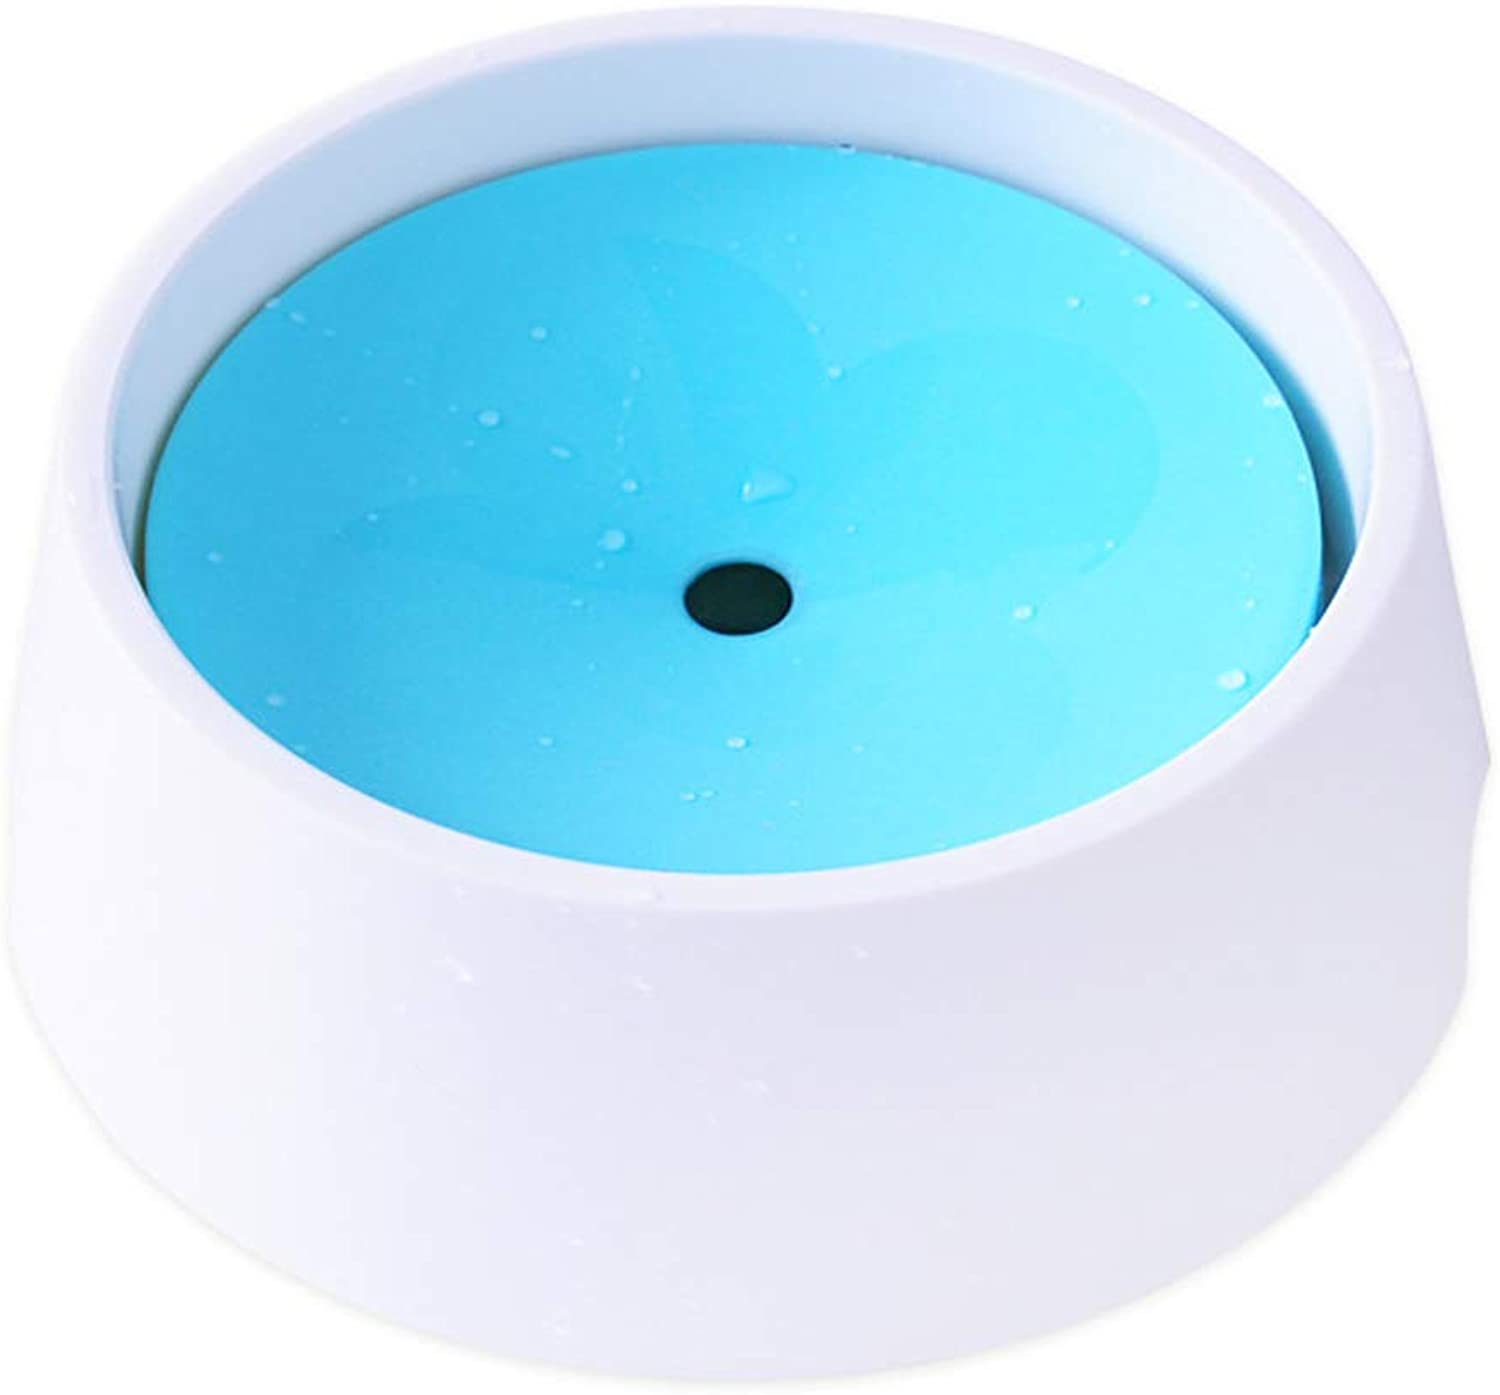 Dog Bowl Water and Food with Floating Disk Pet Bowl, Slow Feeder AntiChoking AntiOverflow Bowl,Skid and AntiChoking Dripless Bowl,for Small Or Large Breeds,bluee